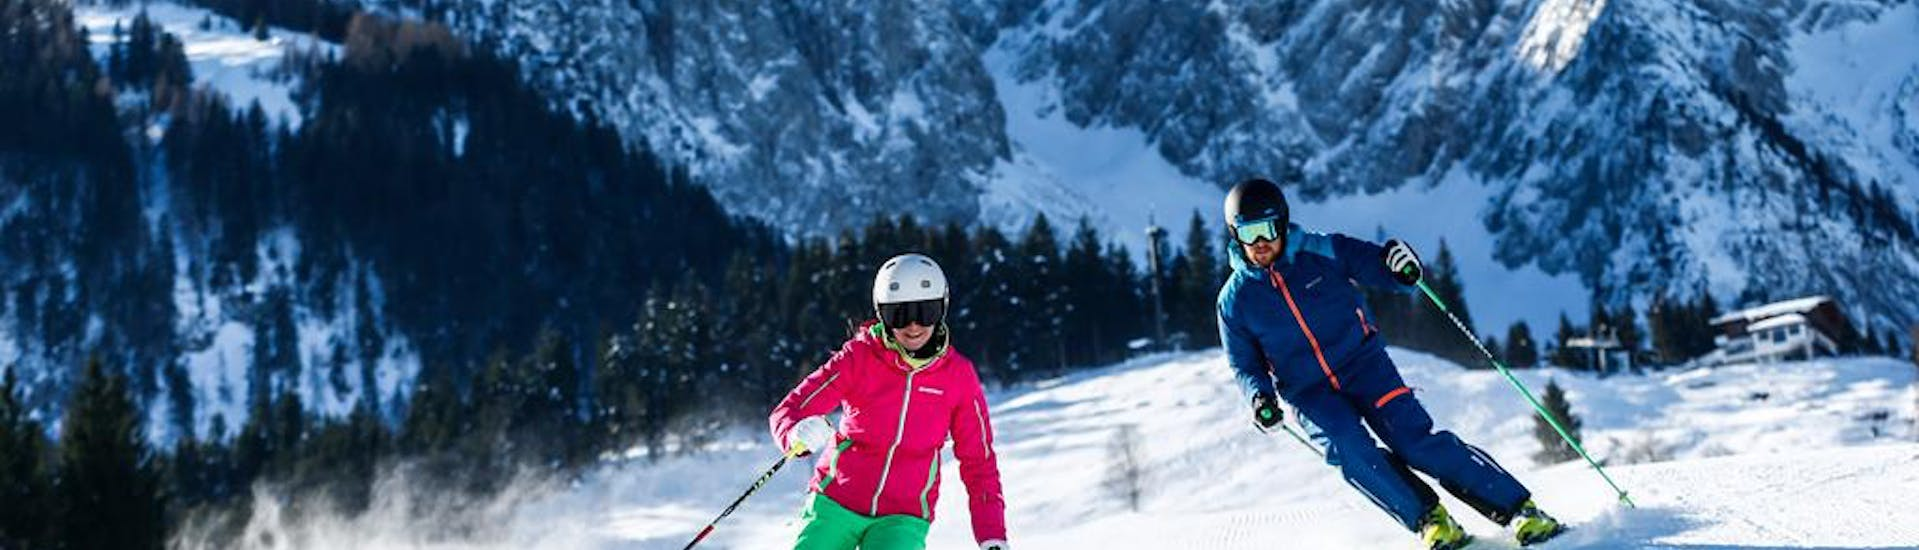 private-ski-lessons-for-adults-of-all-levels-skischule-zahmer-kaiser-hero1